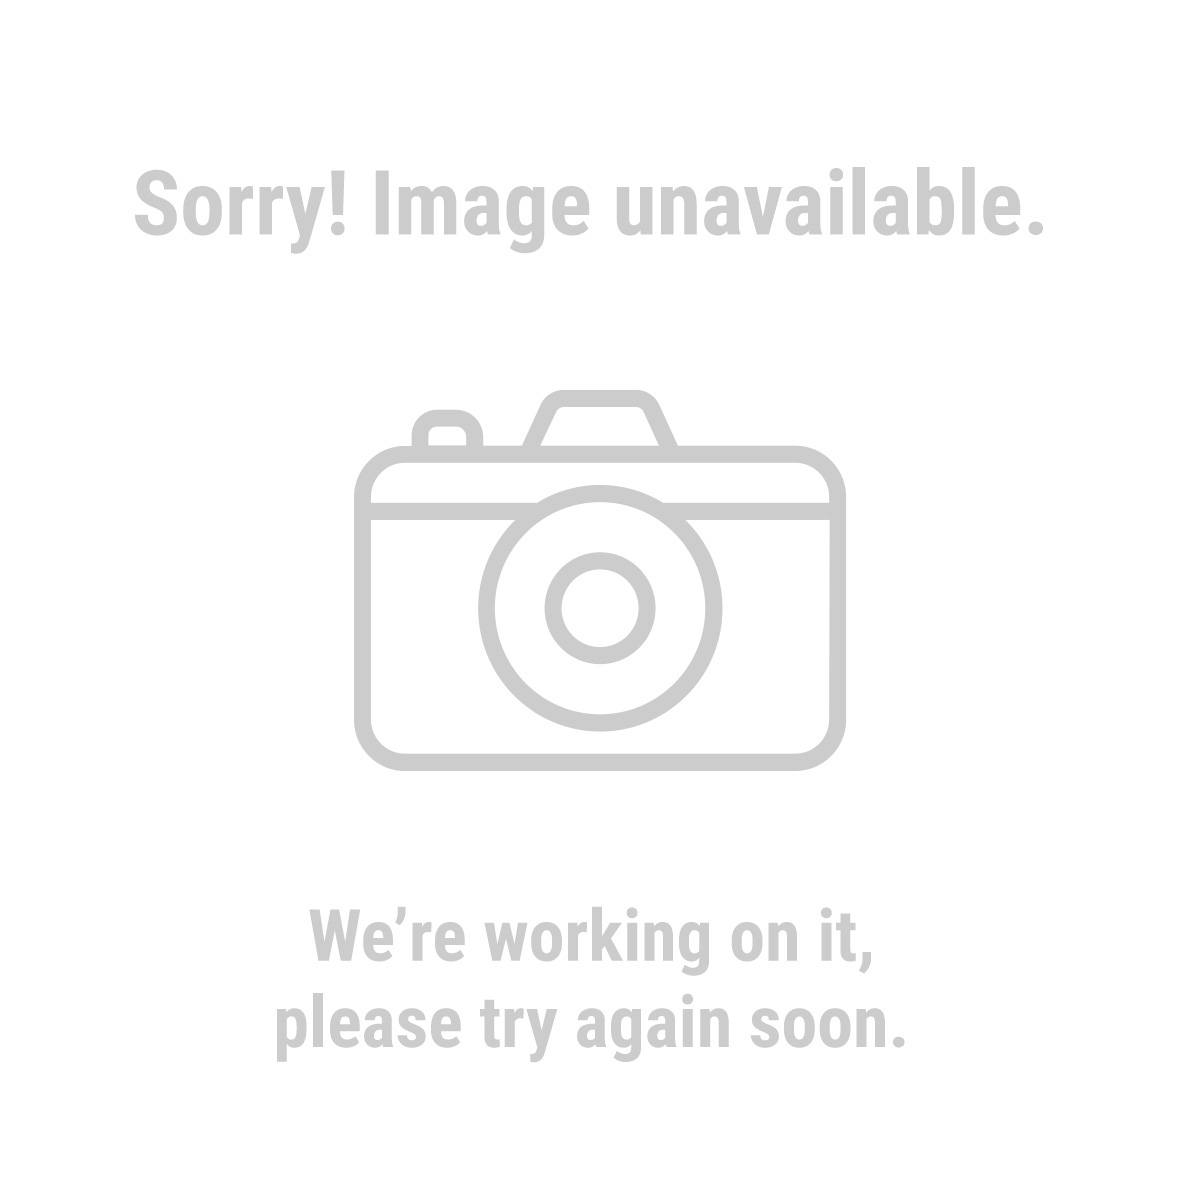 Bunker Hill Security 95154 Dummy Dome Security Camera with LED